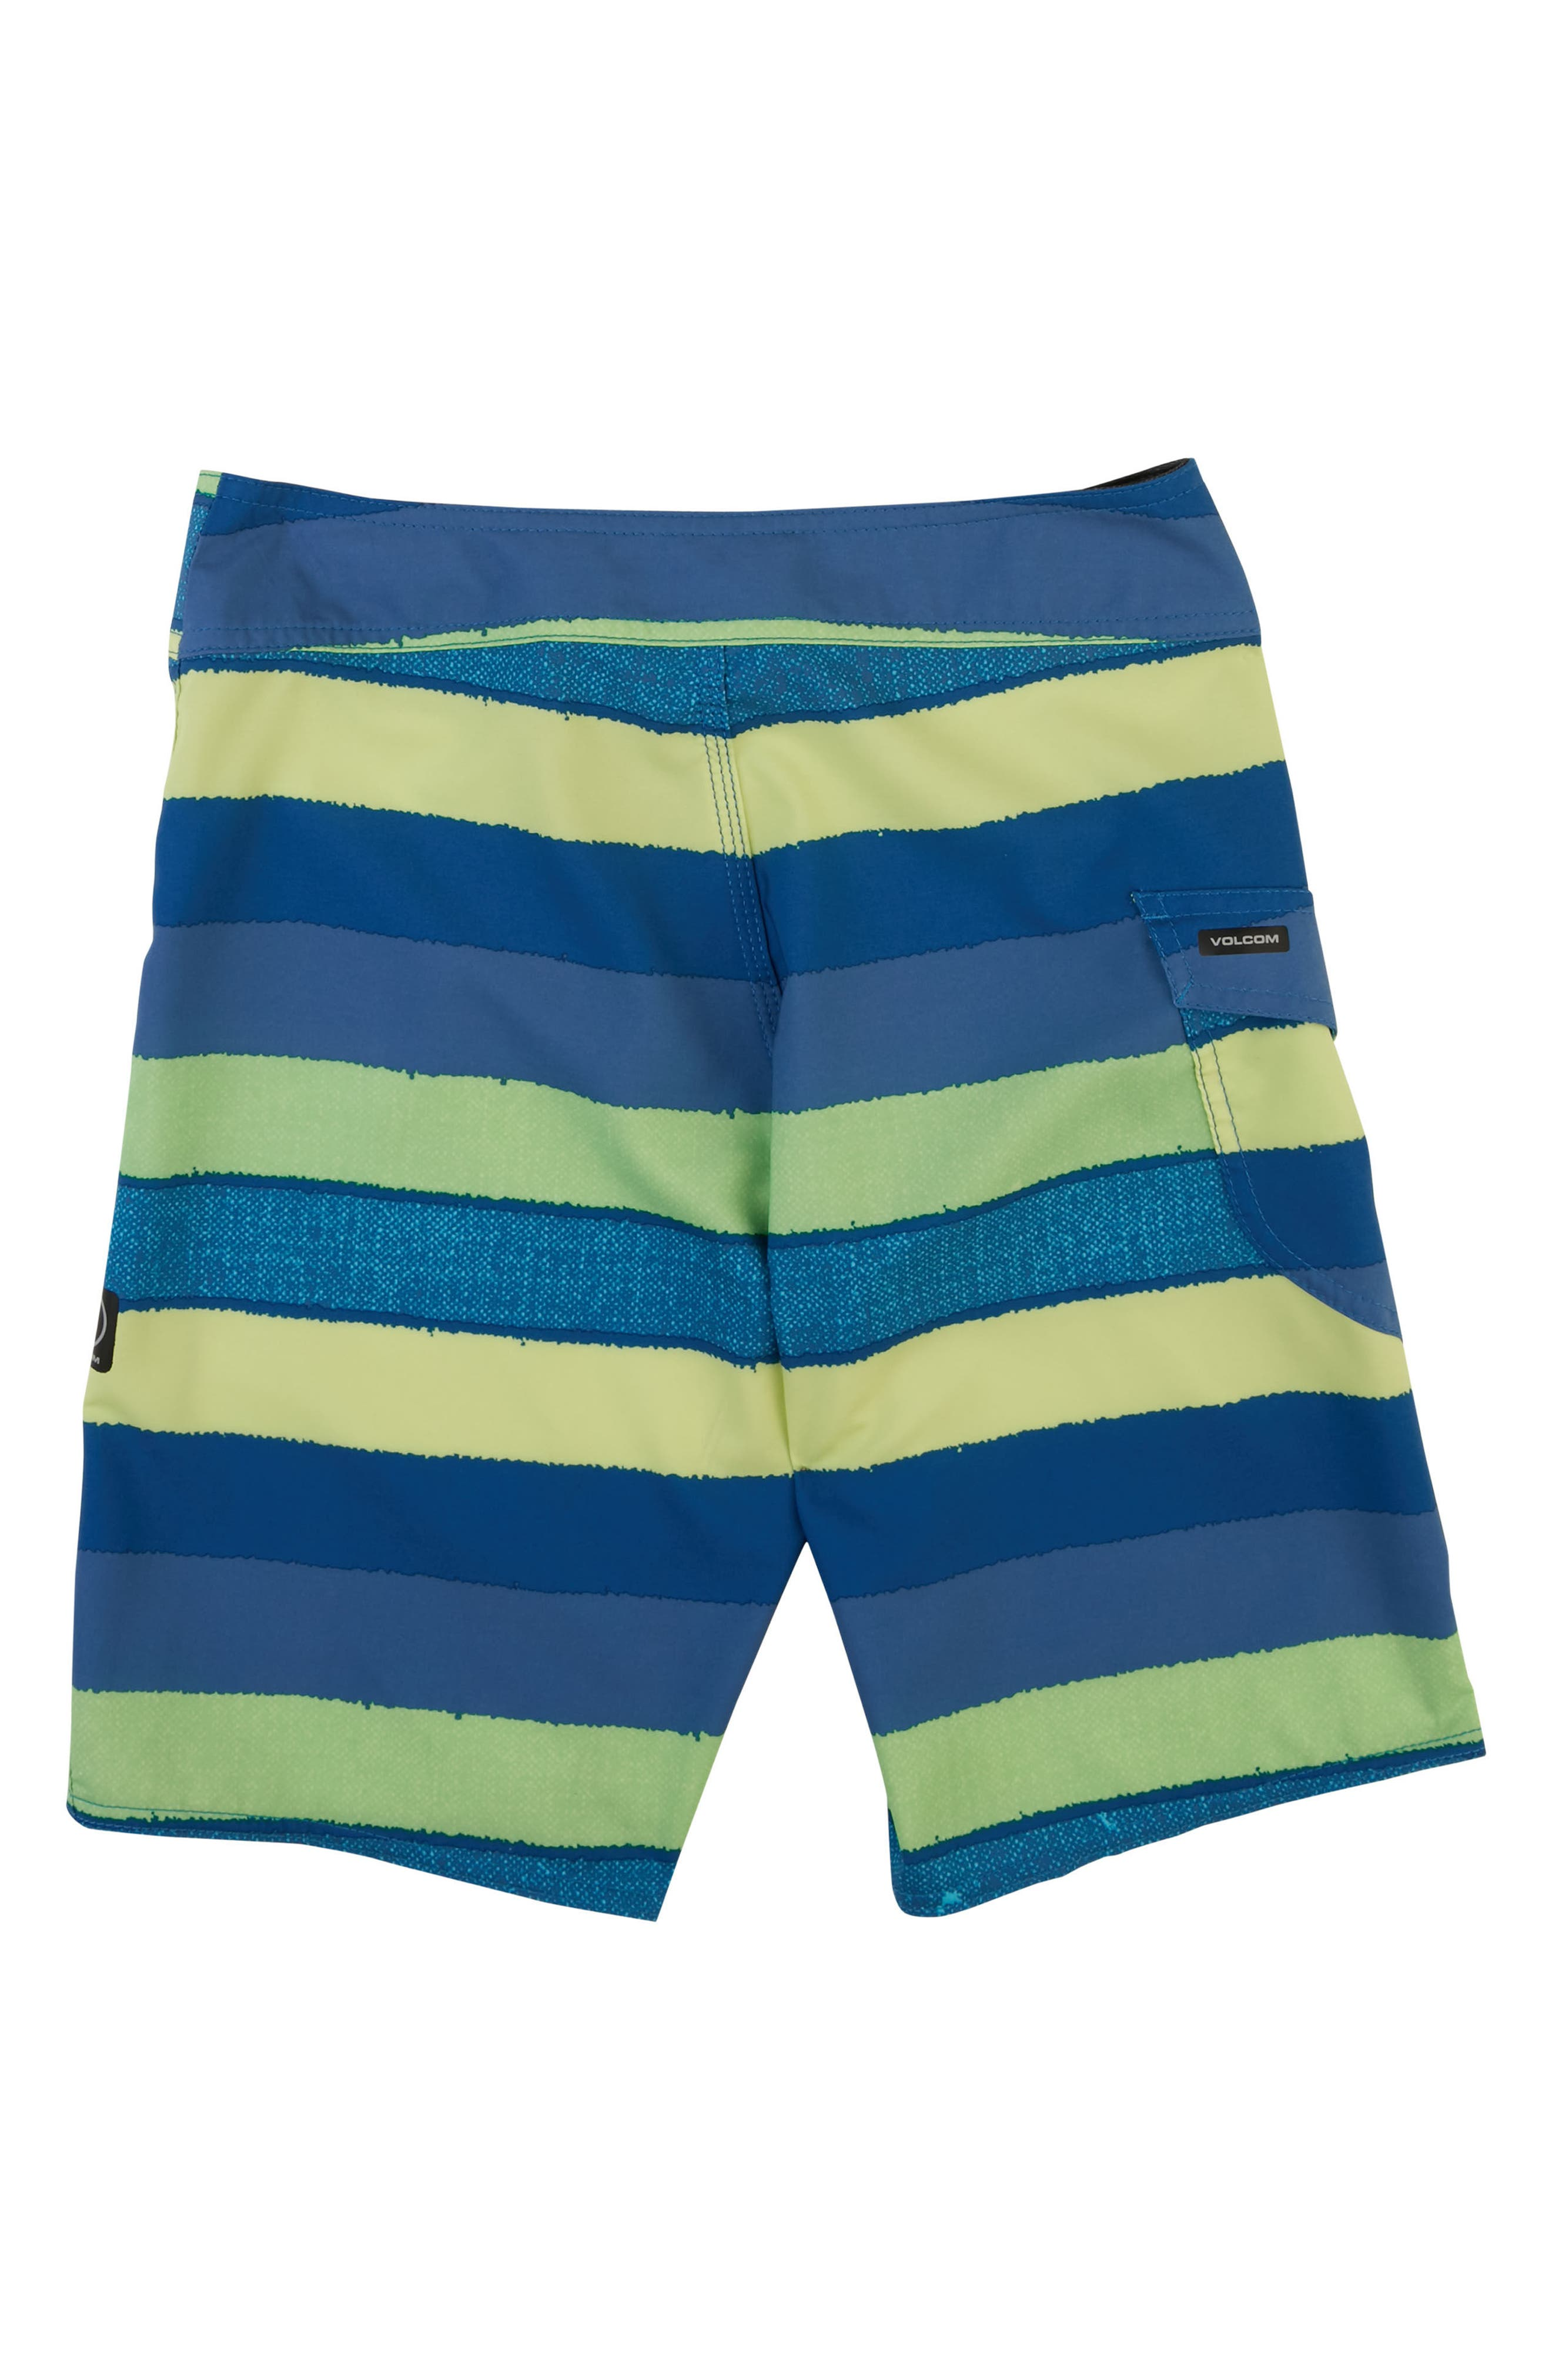 Magnetic Liney Mod Board Shorts,                             Alternate thumbnail 2, color,                             Shadow Lime